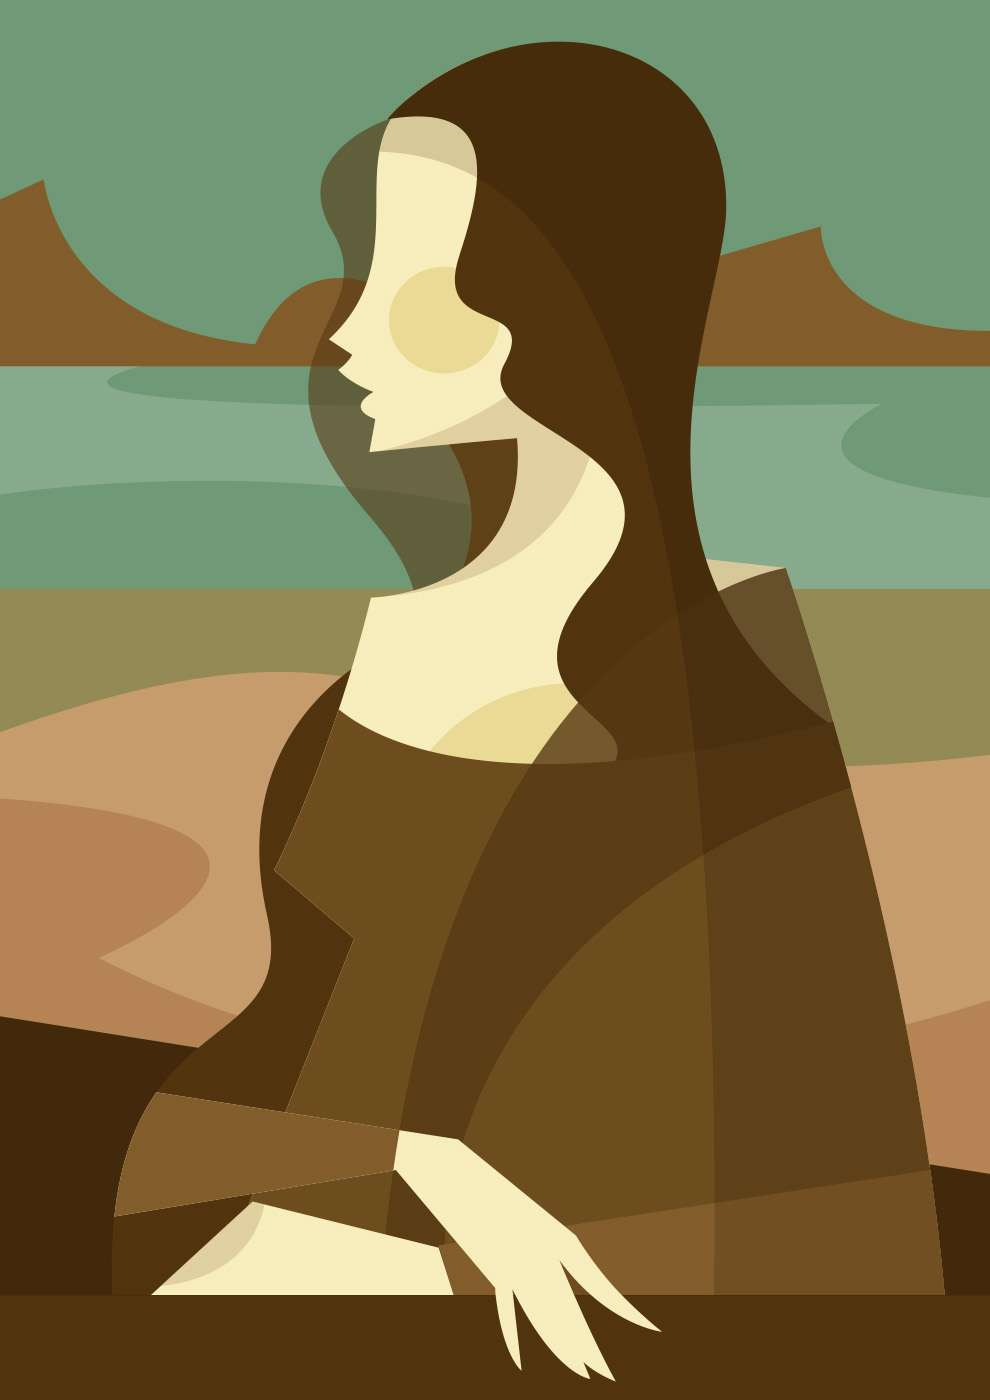 Stanley Chow, Minimalist and abstract bold shape portrait of Mona Lisa